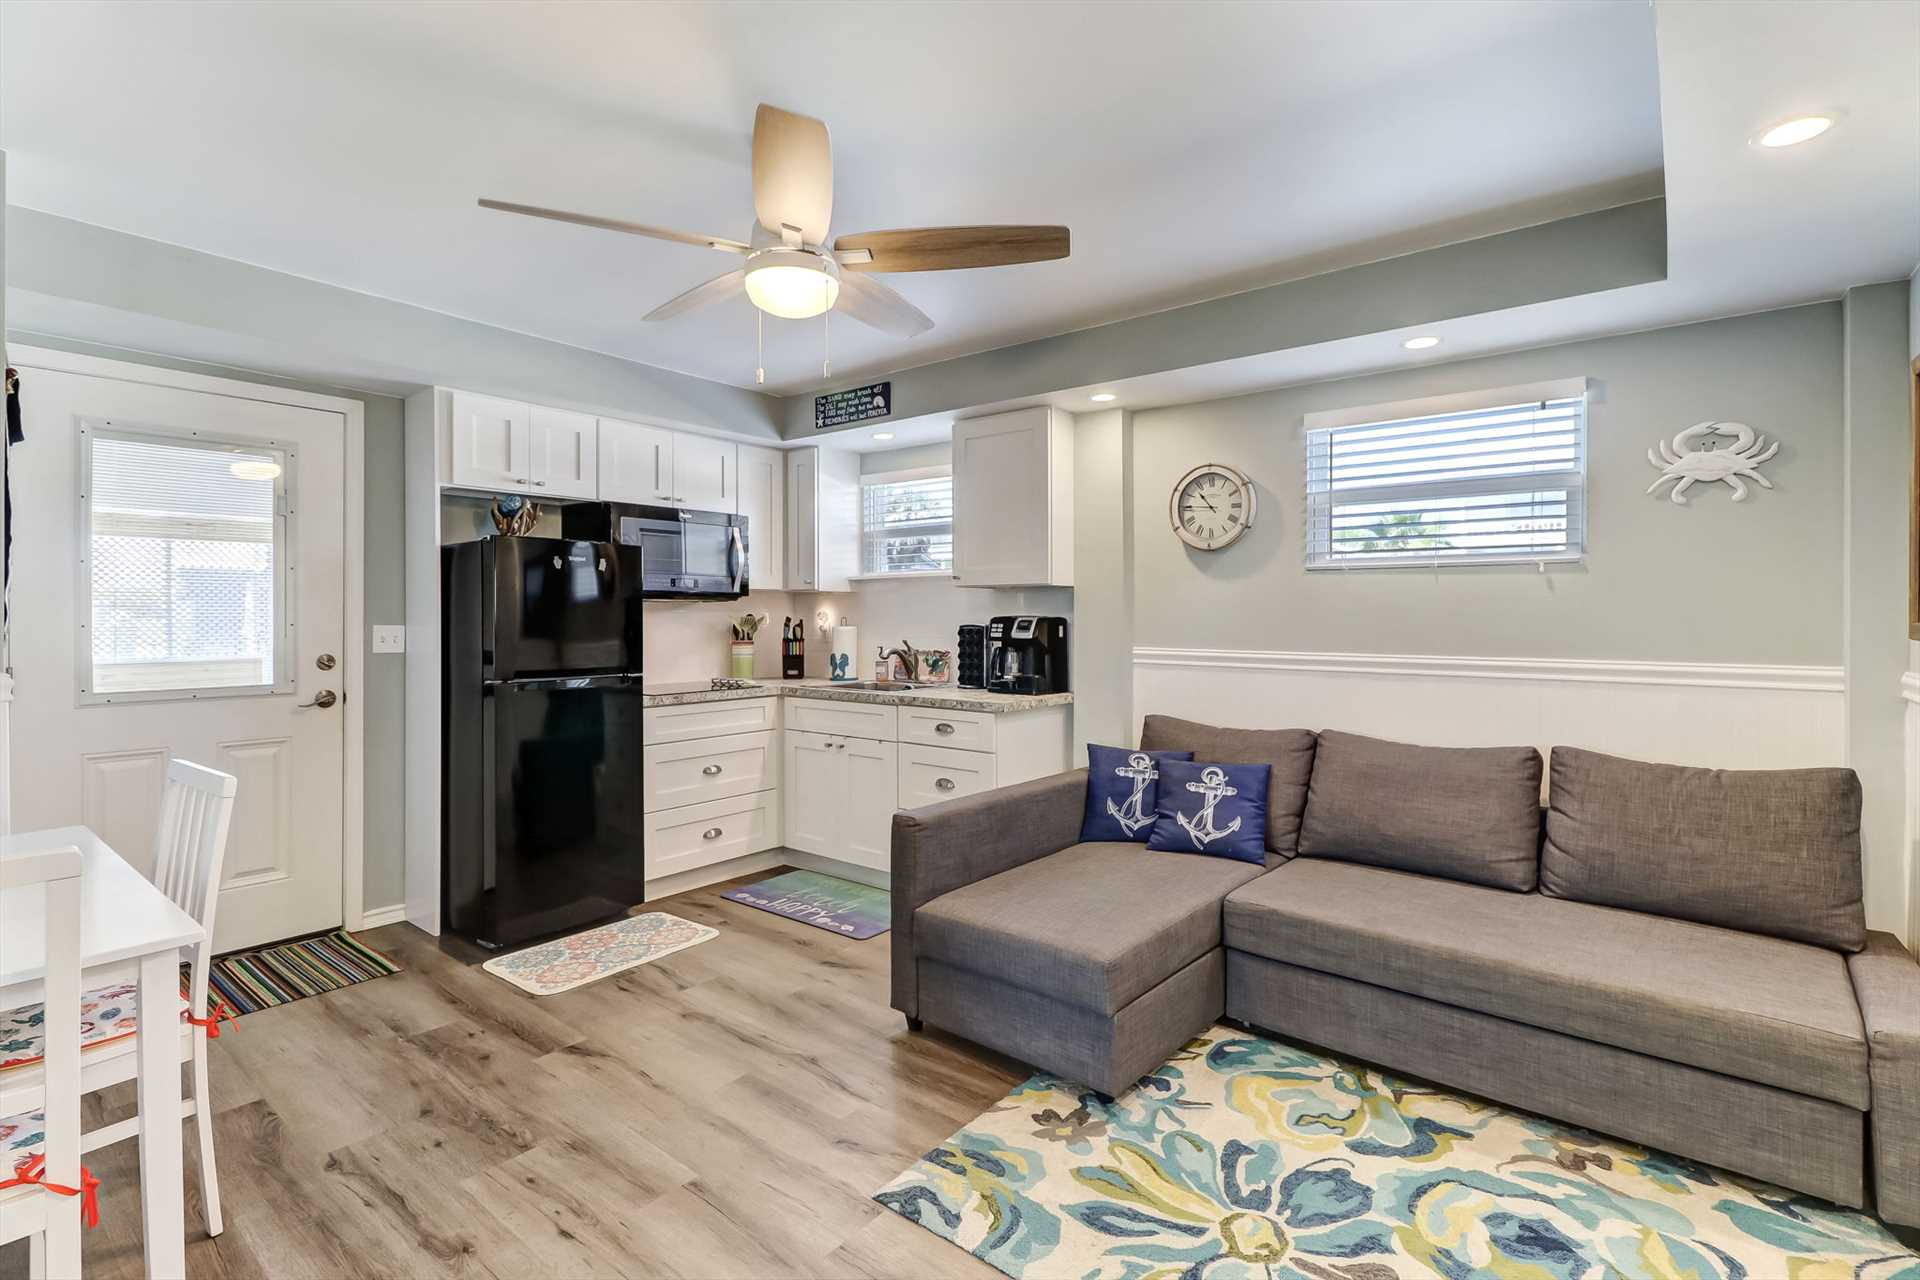 Recently remodeled living space